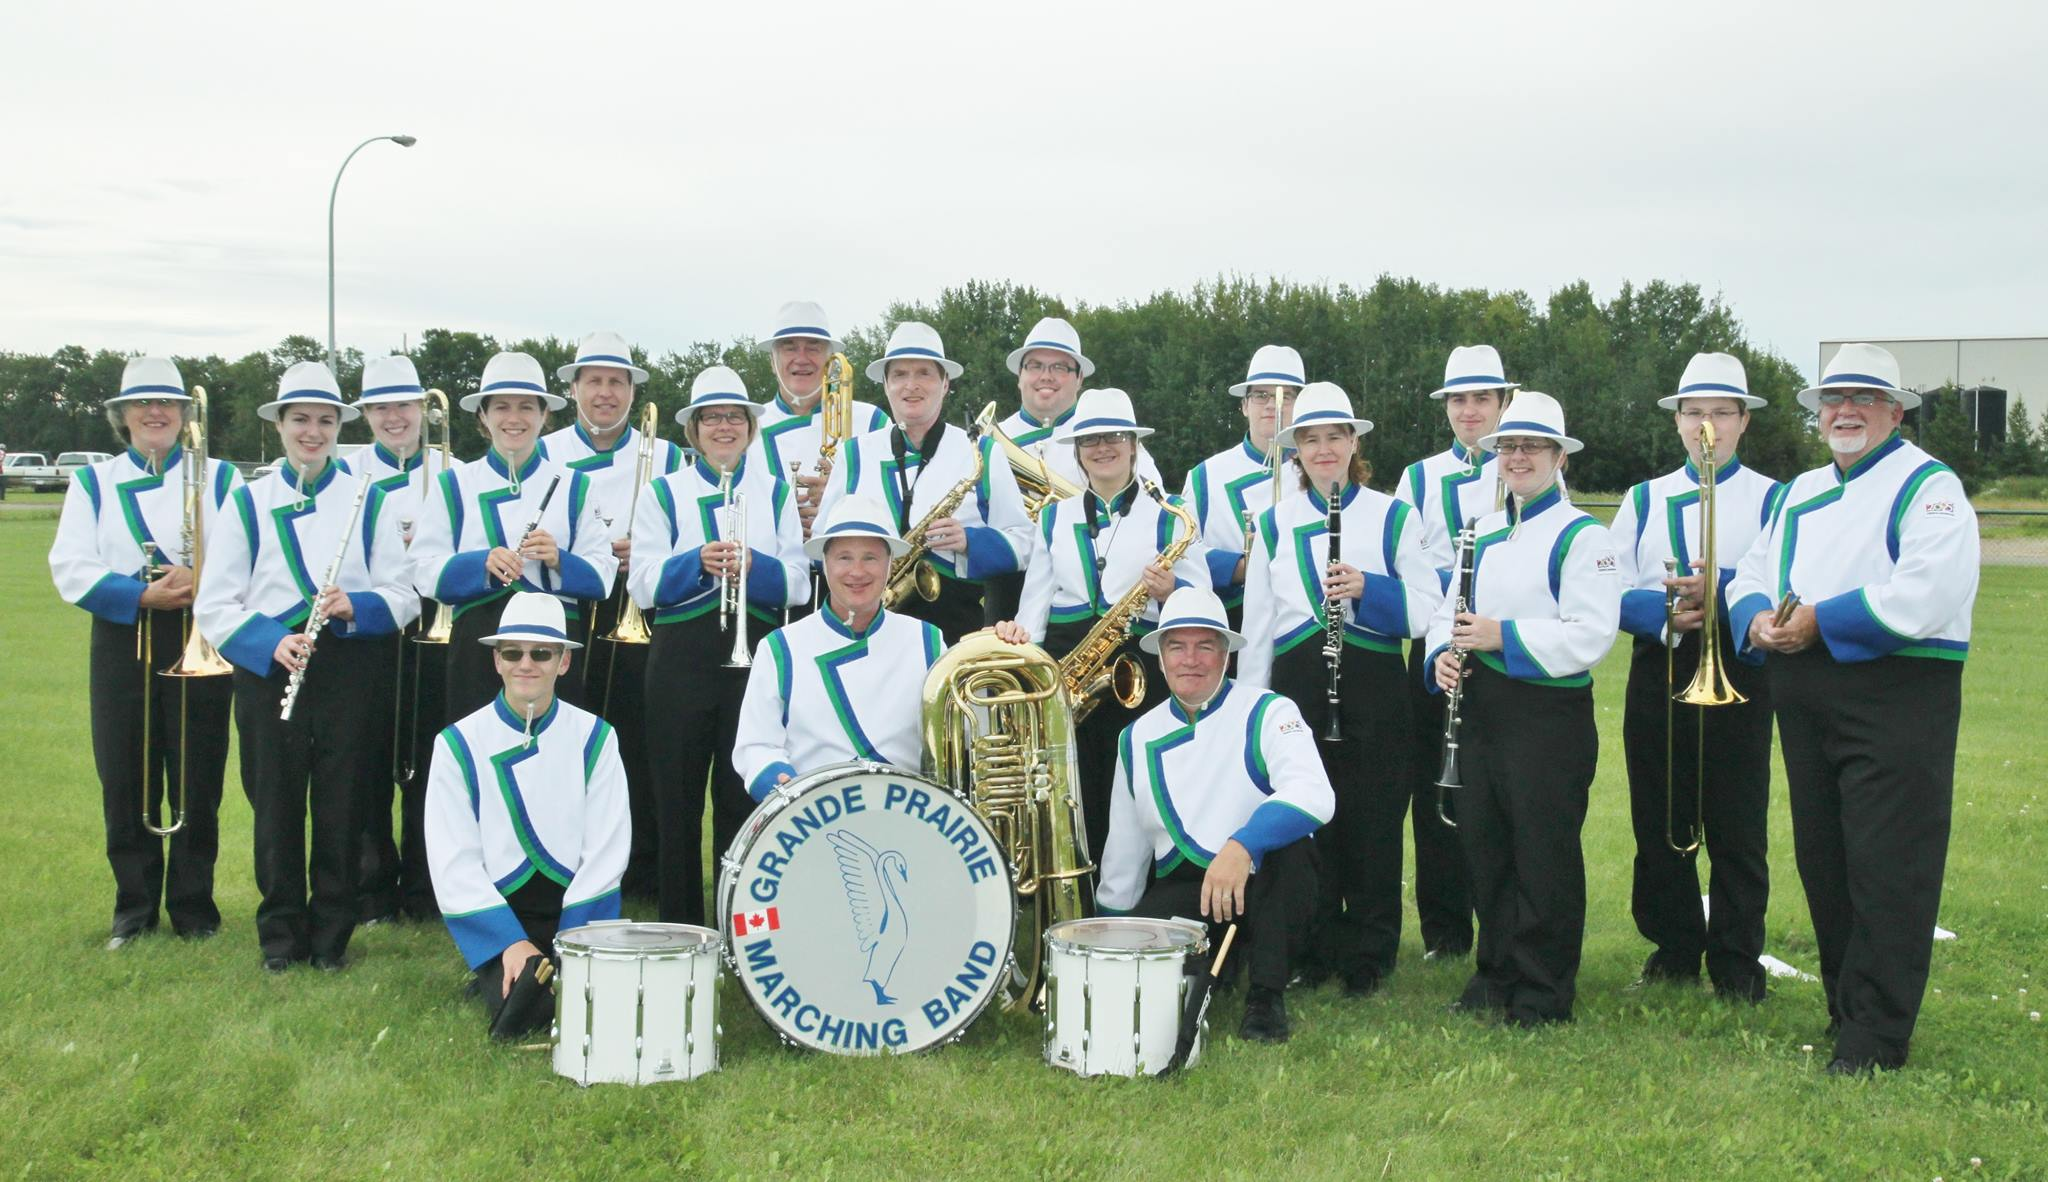 The Grande Prairie Marching Band from Alberta, Canada